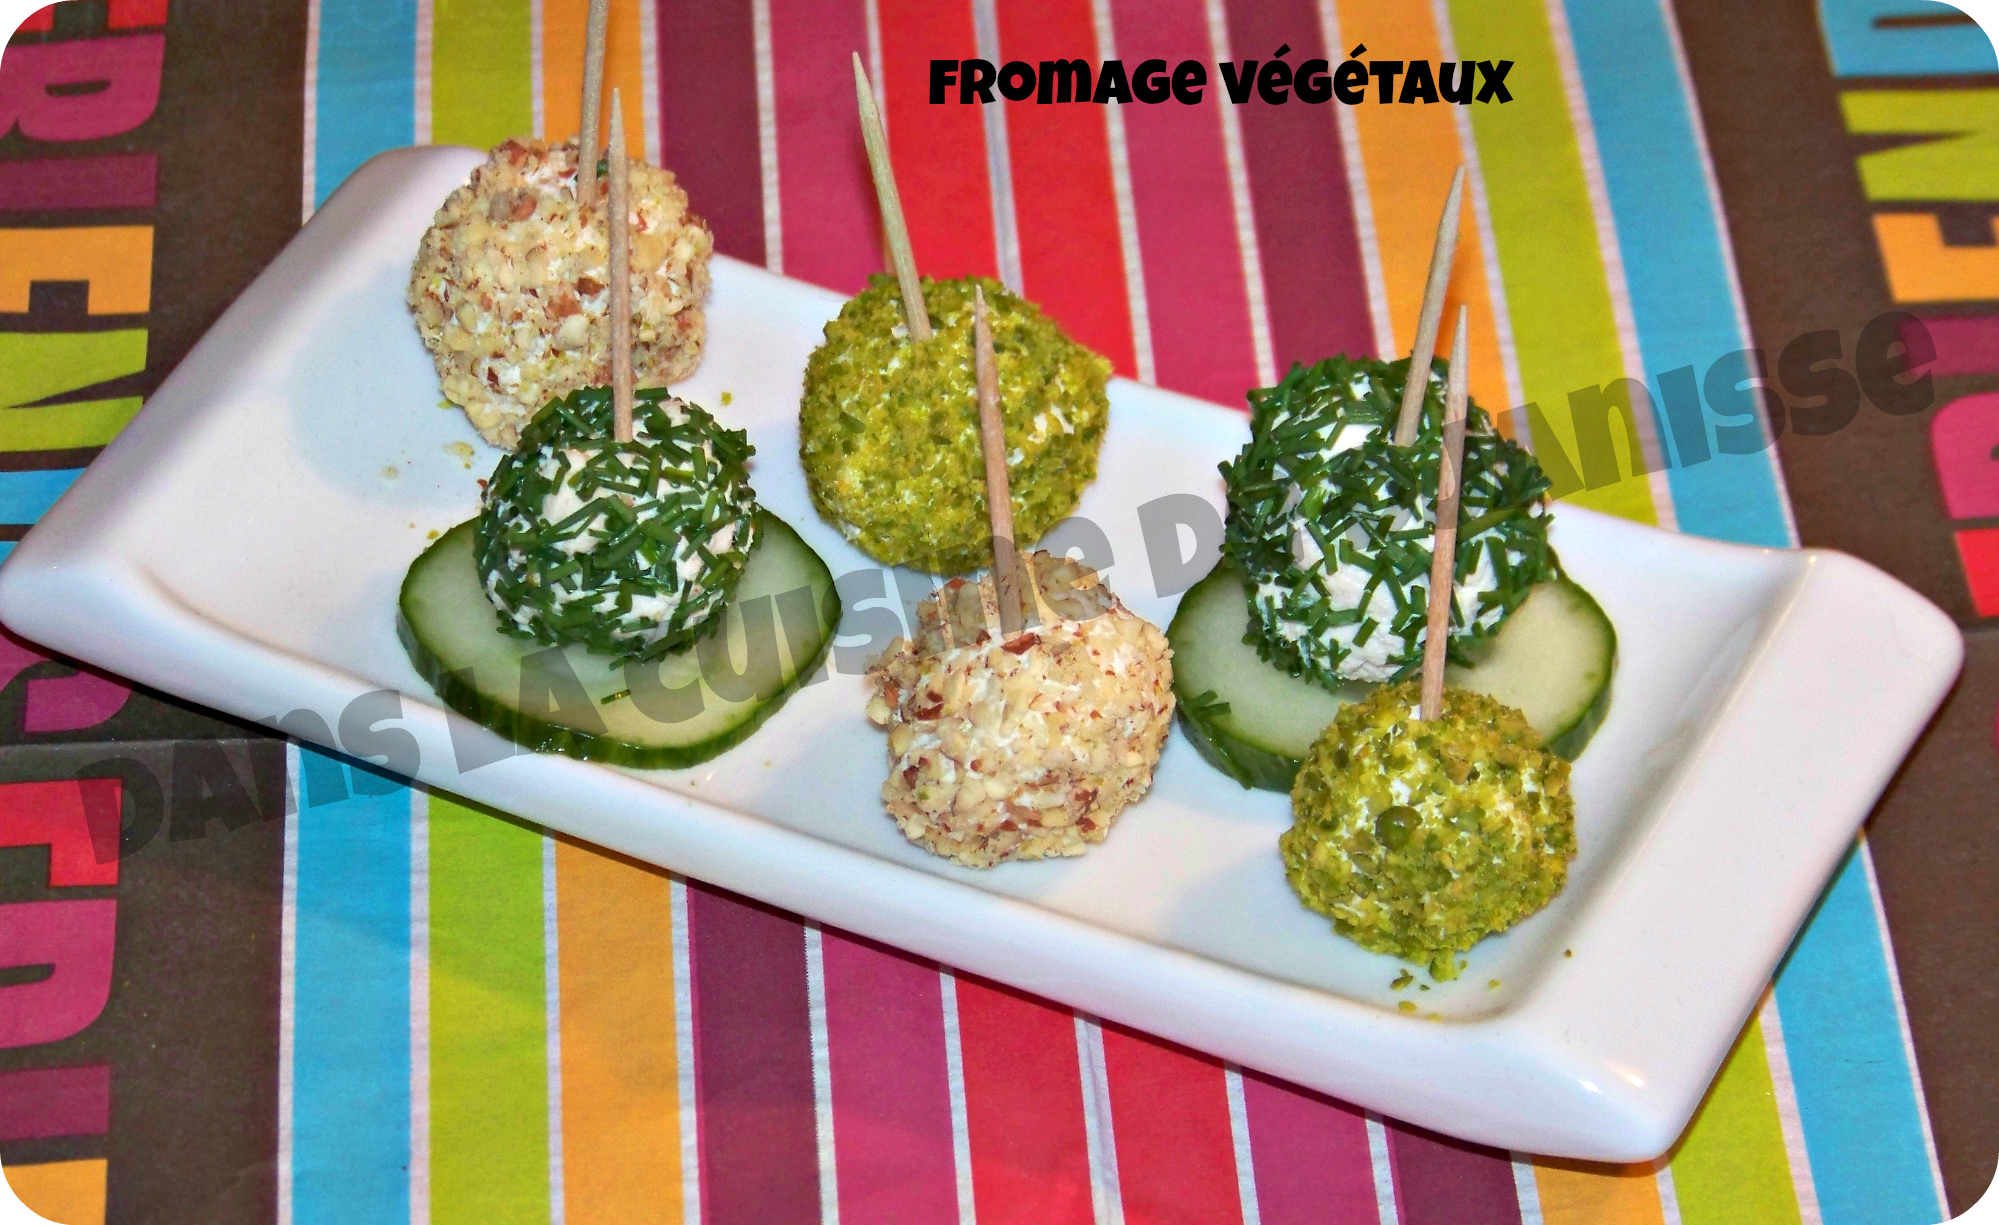 Fromages vegetaux